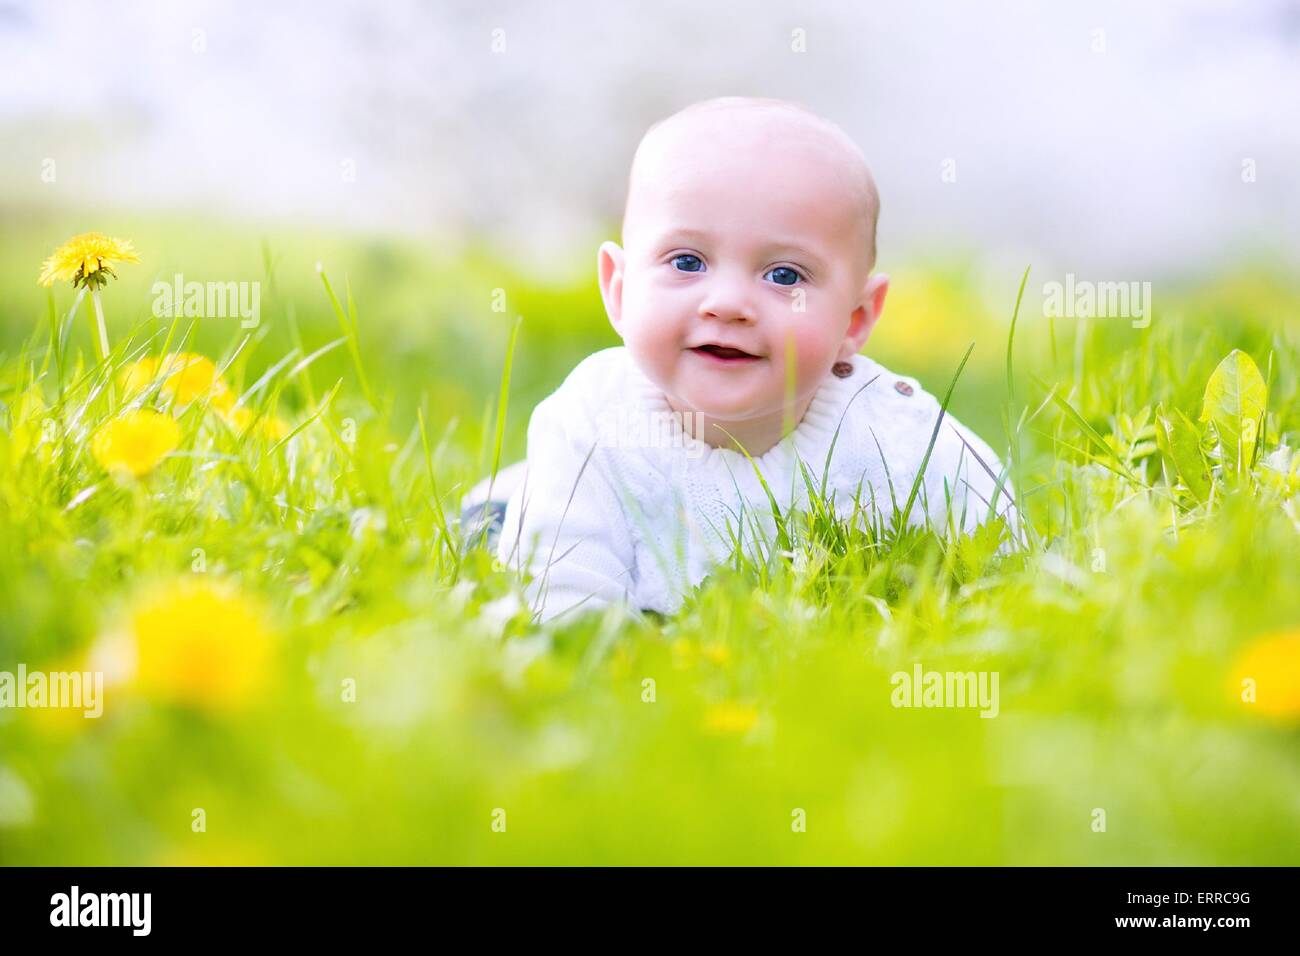 Adorable little happy smiling baby boy playing in a blooming apple garden between beautiful trees with white flowers - Stock Image